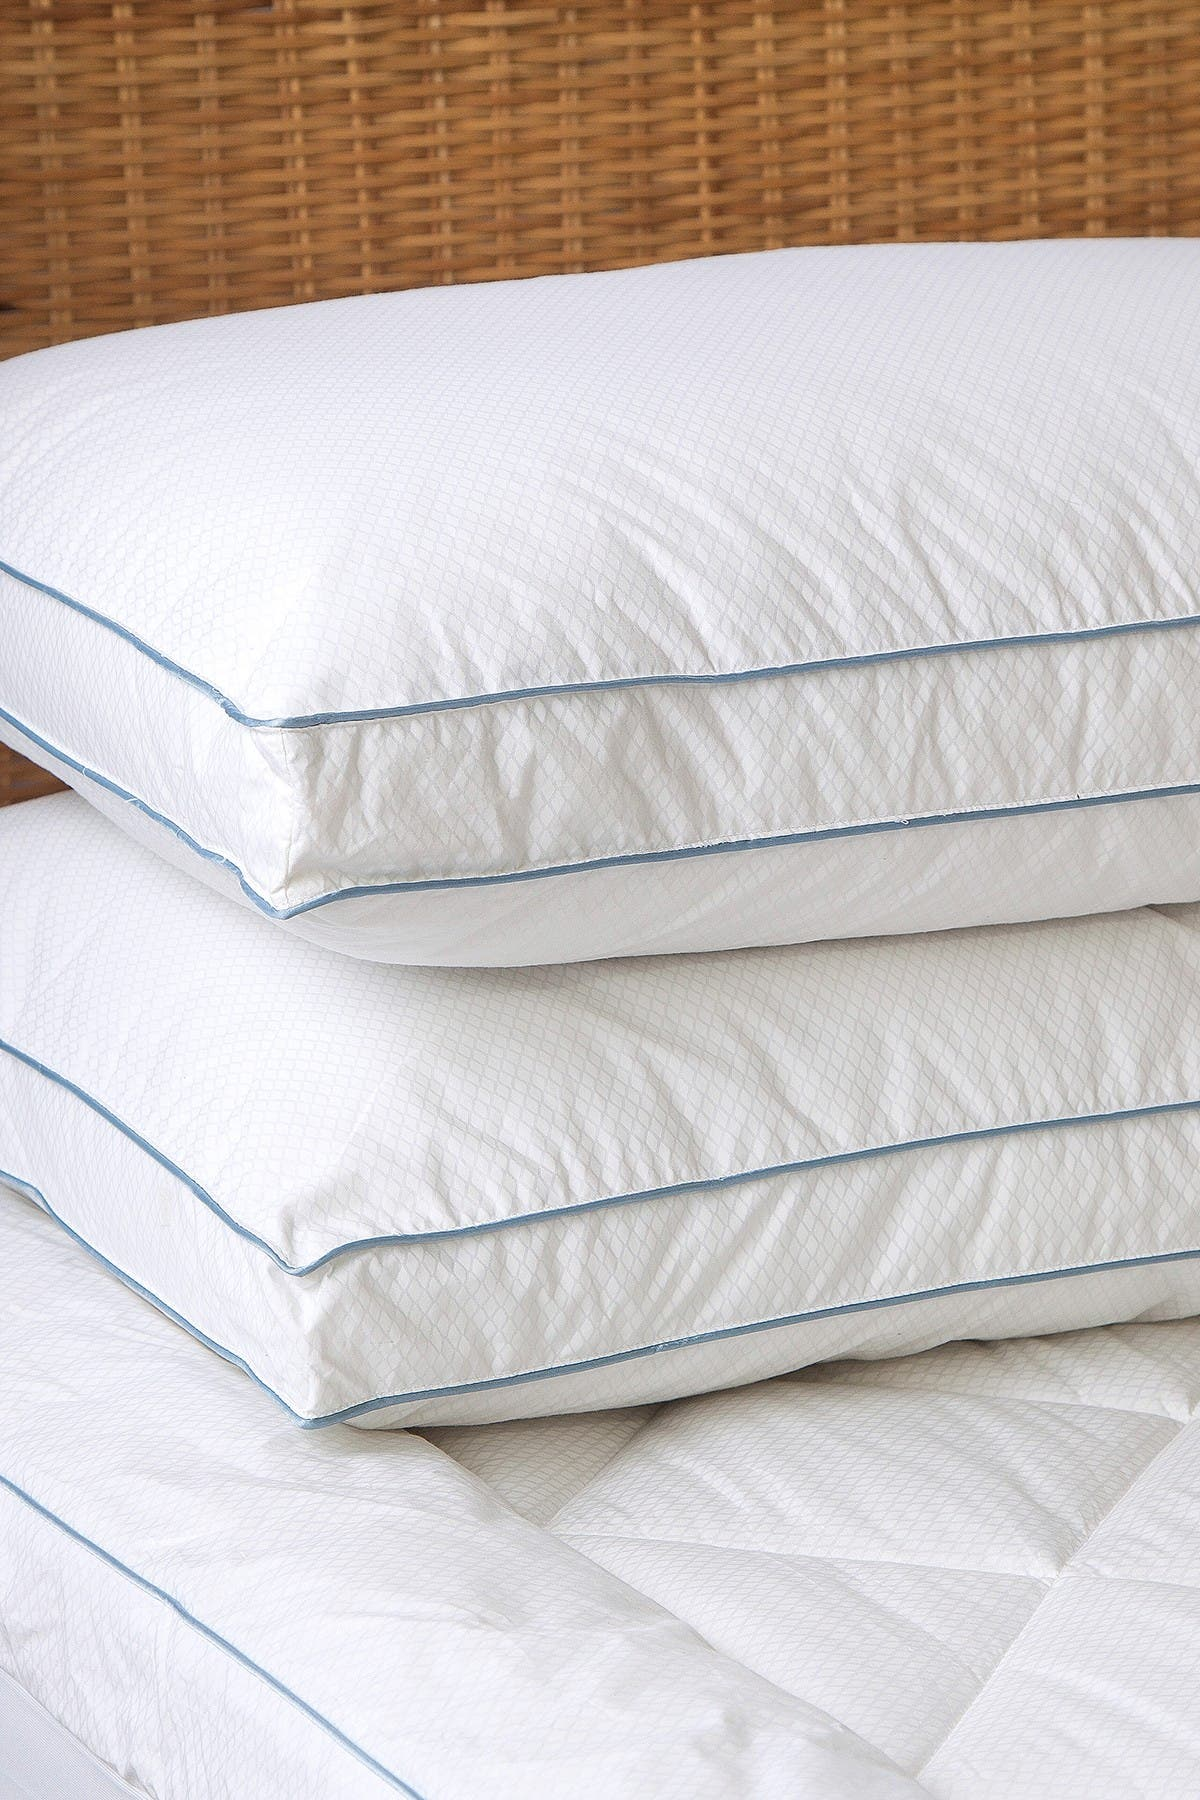 Image of Allied Home Tempa Sleep King Cotton Cooling Down Alternative Gusseted Pillow